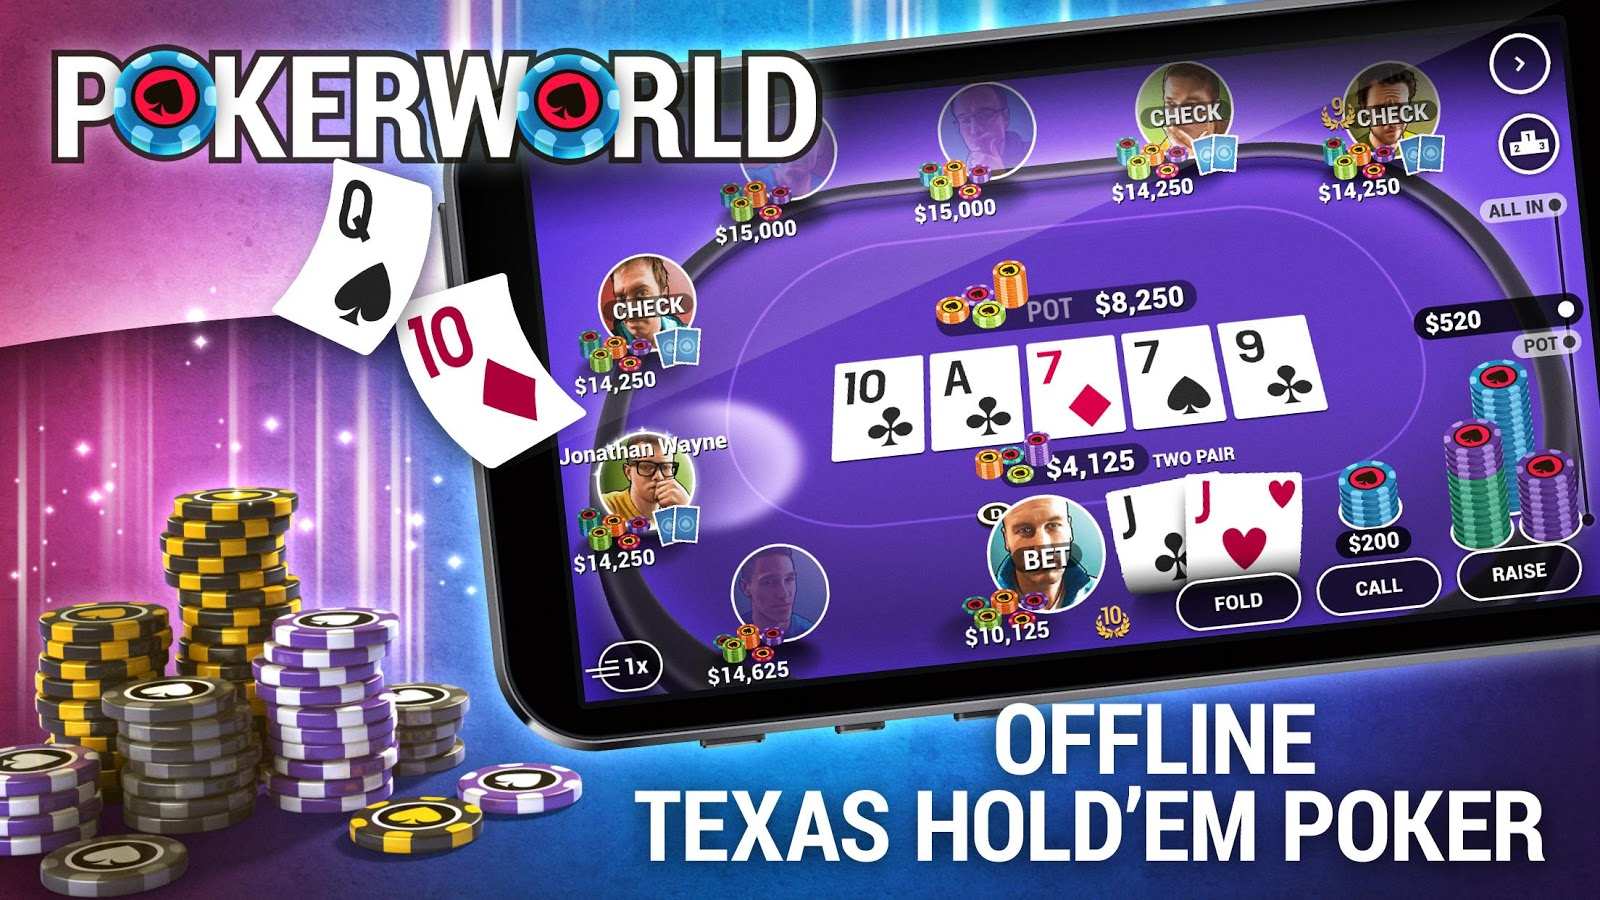 Poker World - Offline Texas Holdem- screenshot